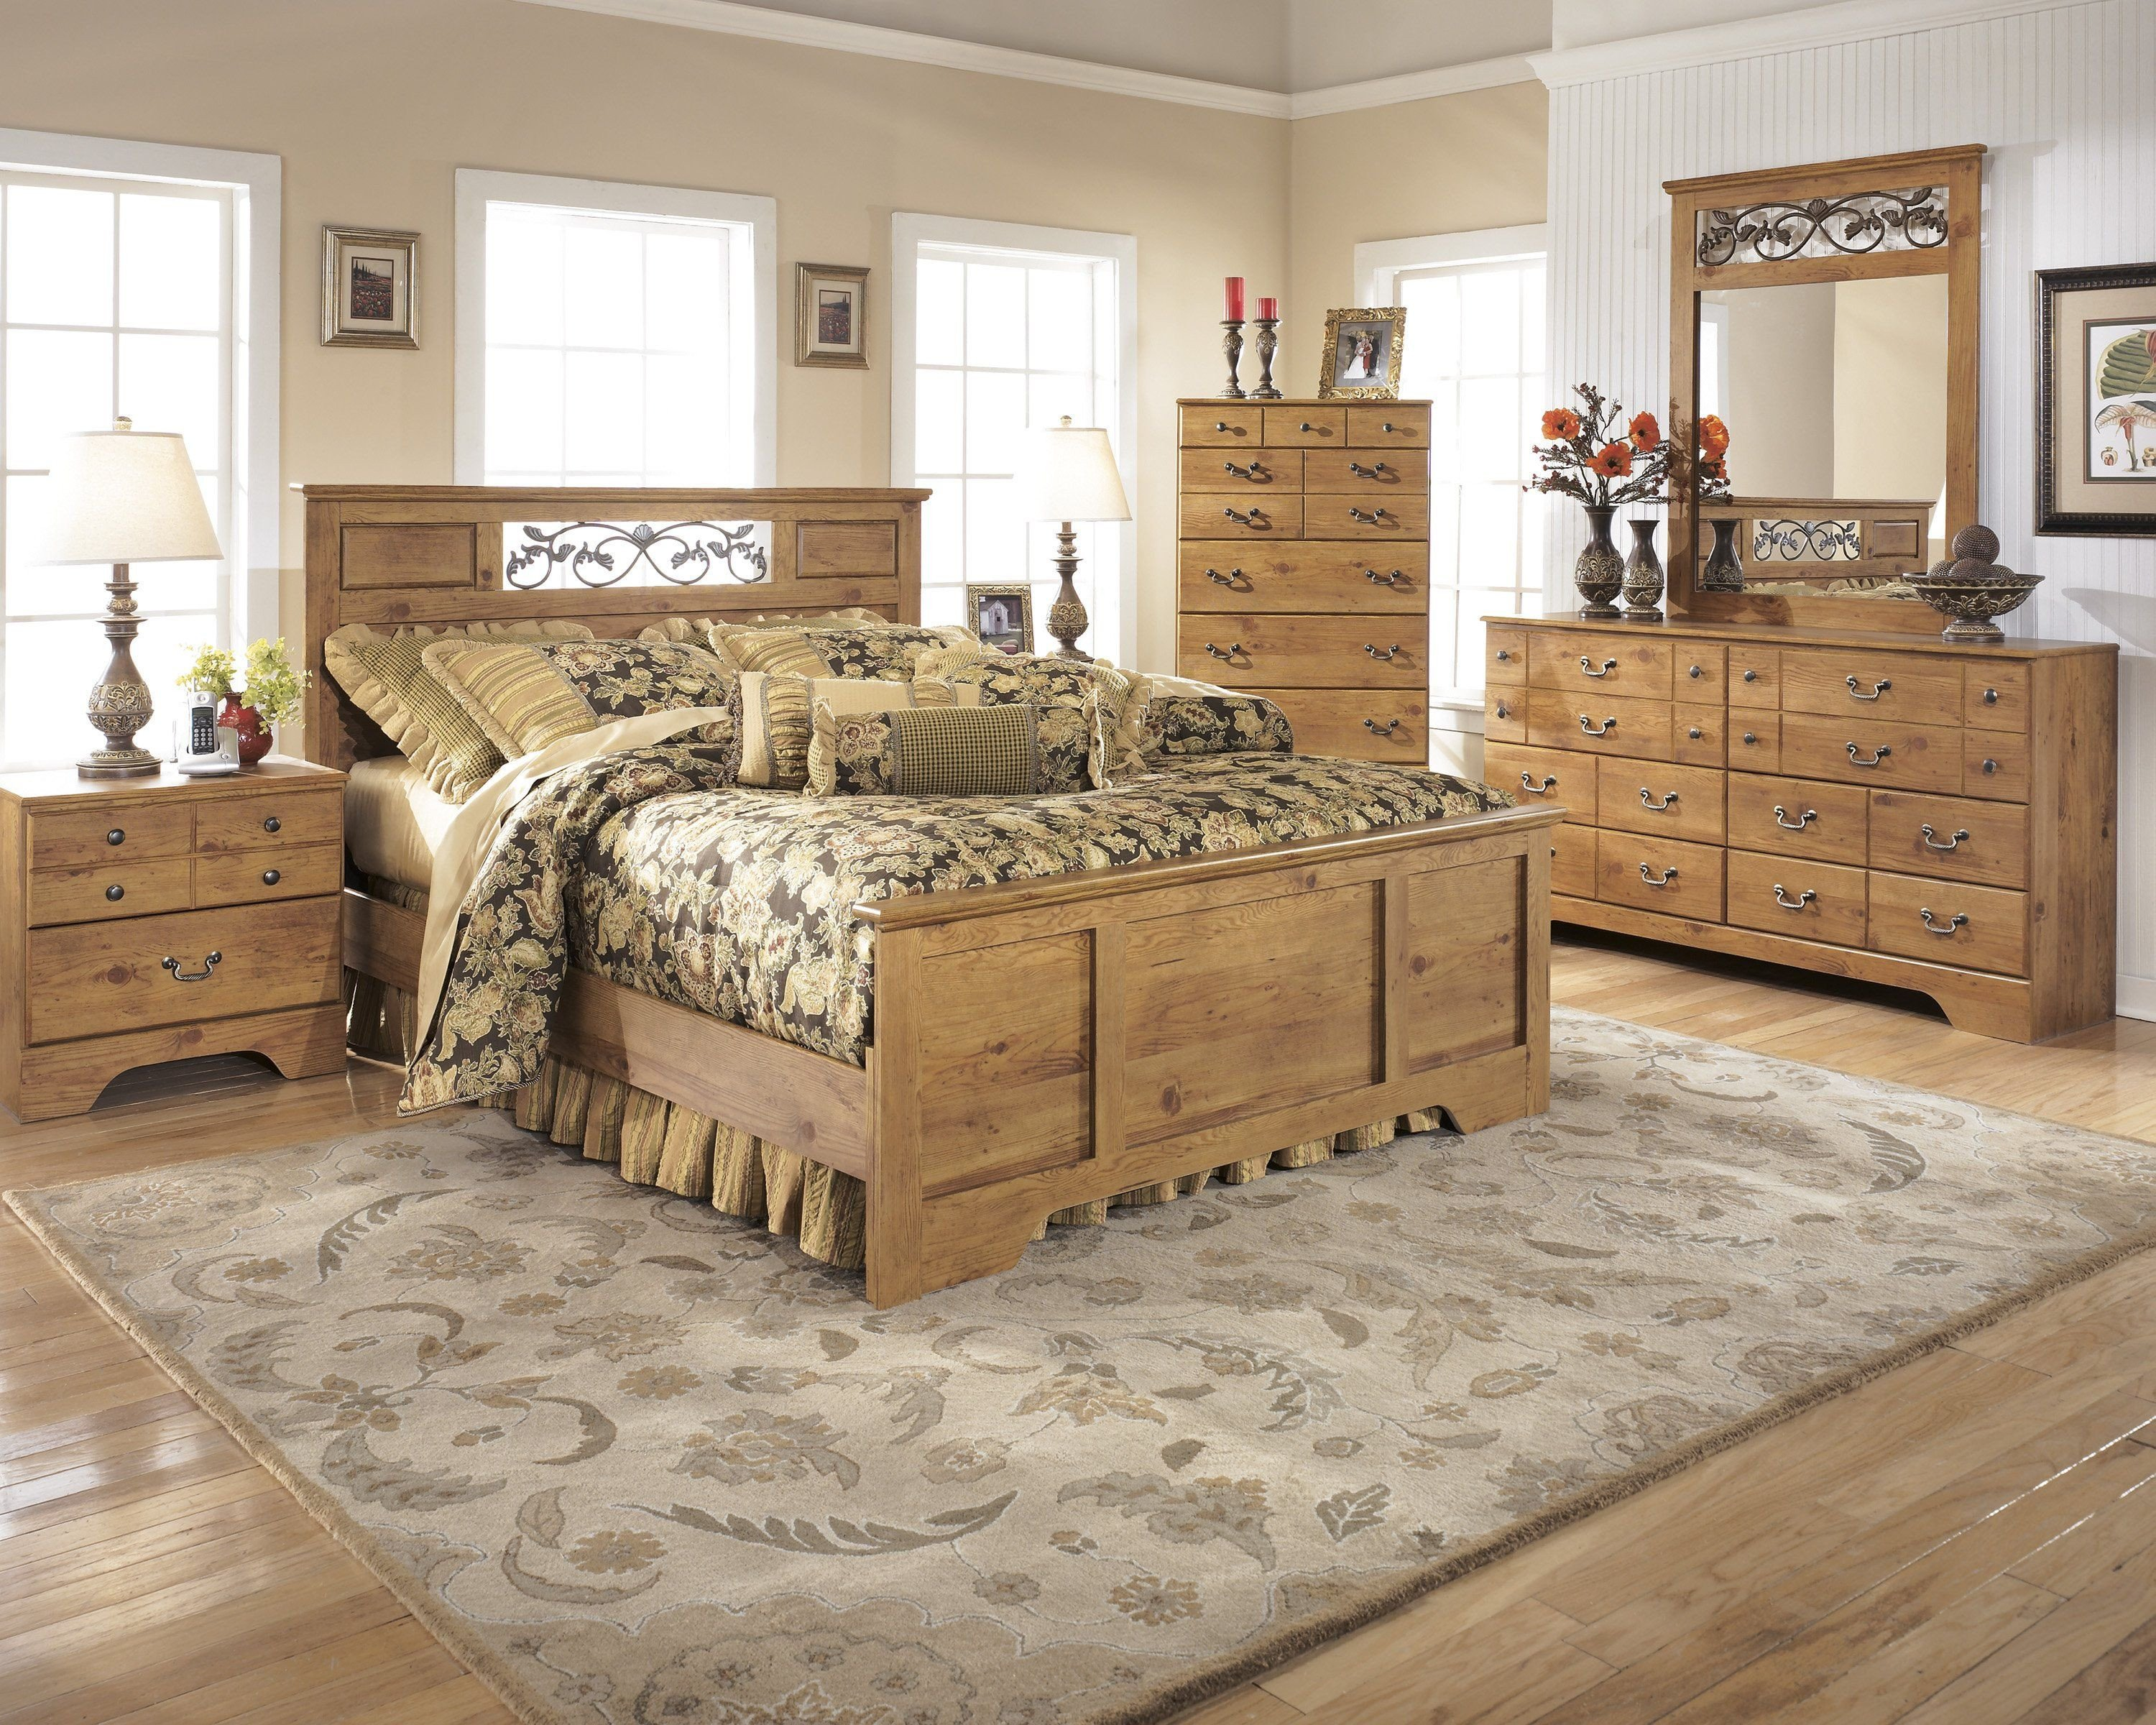 Ashley Furniture Bedroom Set 14 Piece Elegant Signature Design by ashley Bittersweet 4 Piece Queen Panel